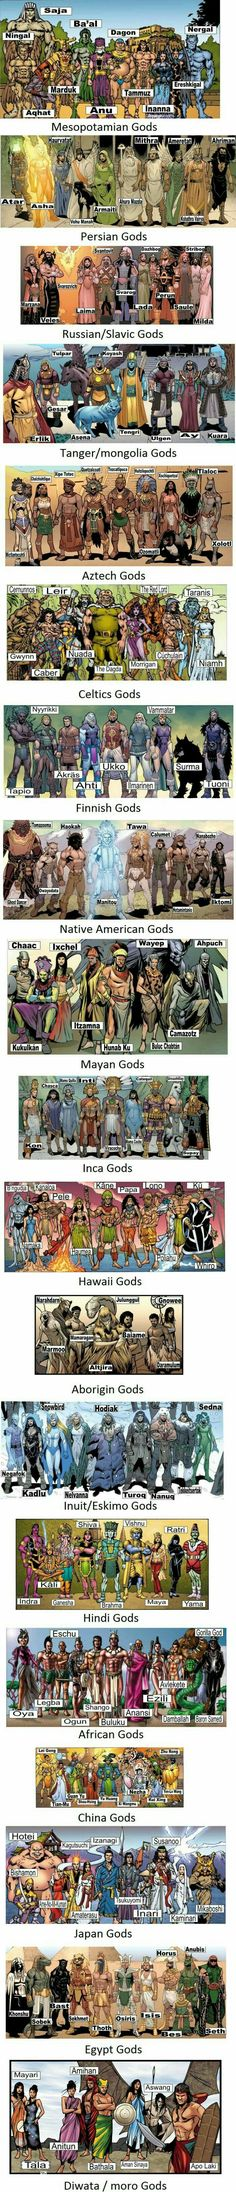 Pagan Gods made into cartoons for children amd unsuspecting parents to participate in idol worship/satanism